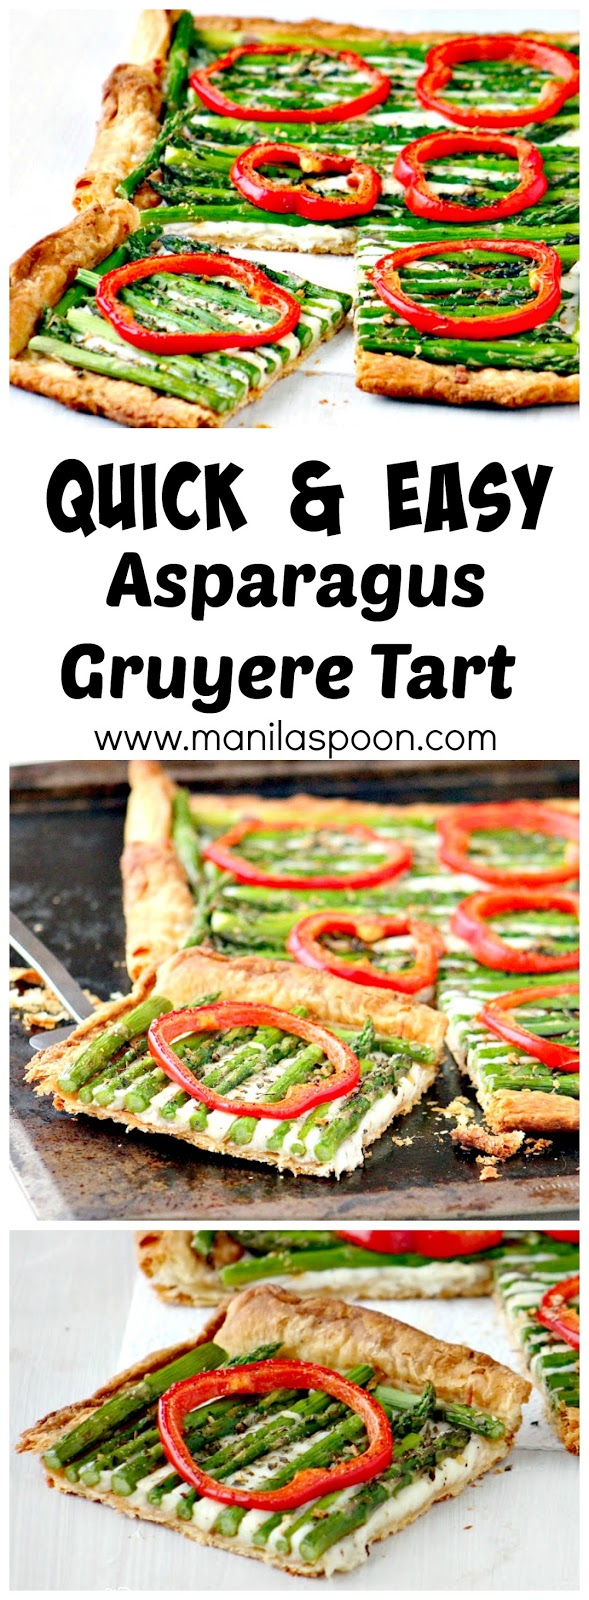 ... Cooking Across America (Demarle Cookbook) - Asparagus Gruyere Tart